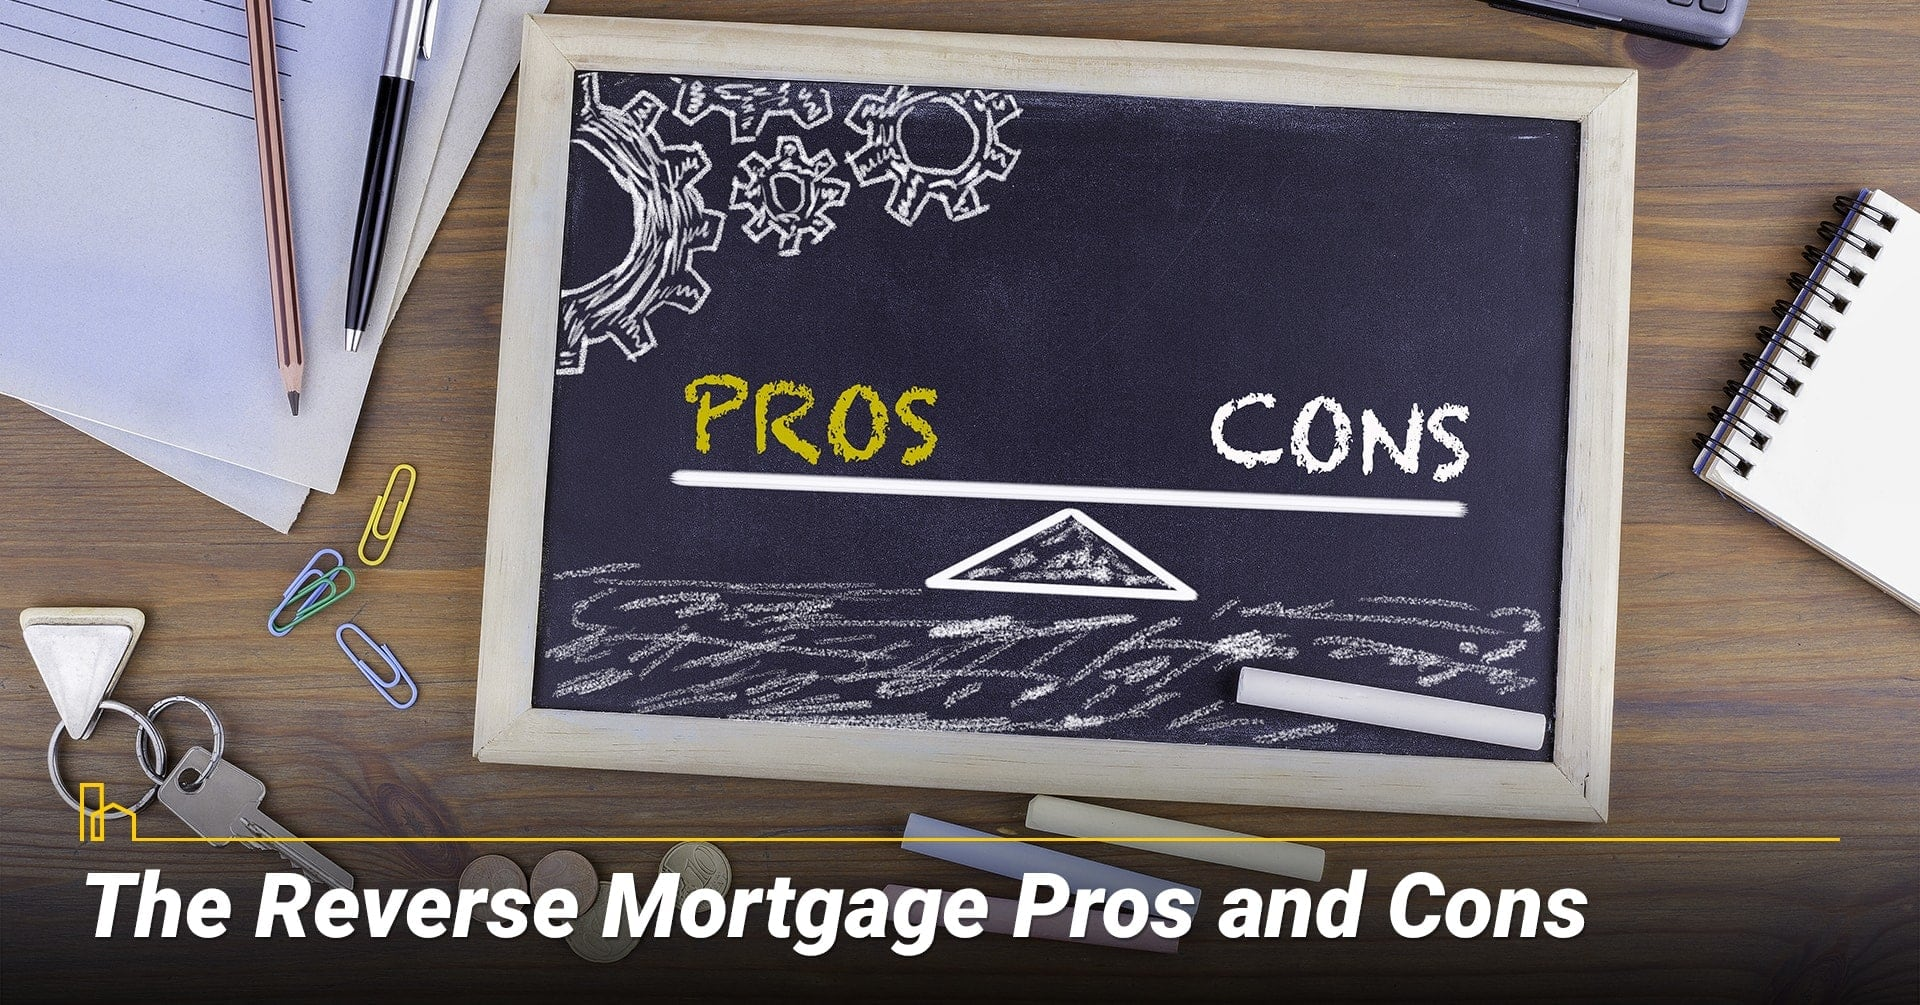 What are the Reverse Mortgage Pros and Cons? pluses and minuses of a reverse mortgage